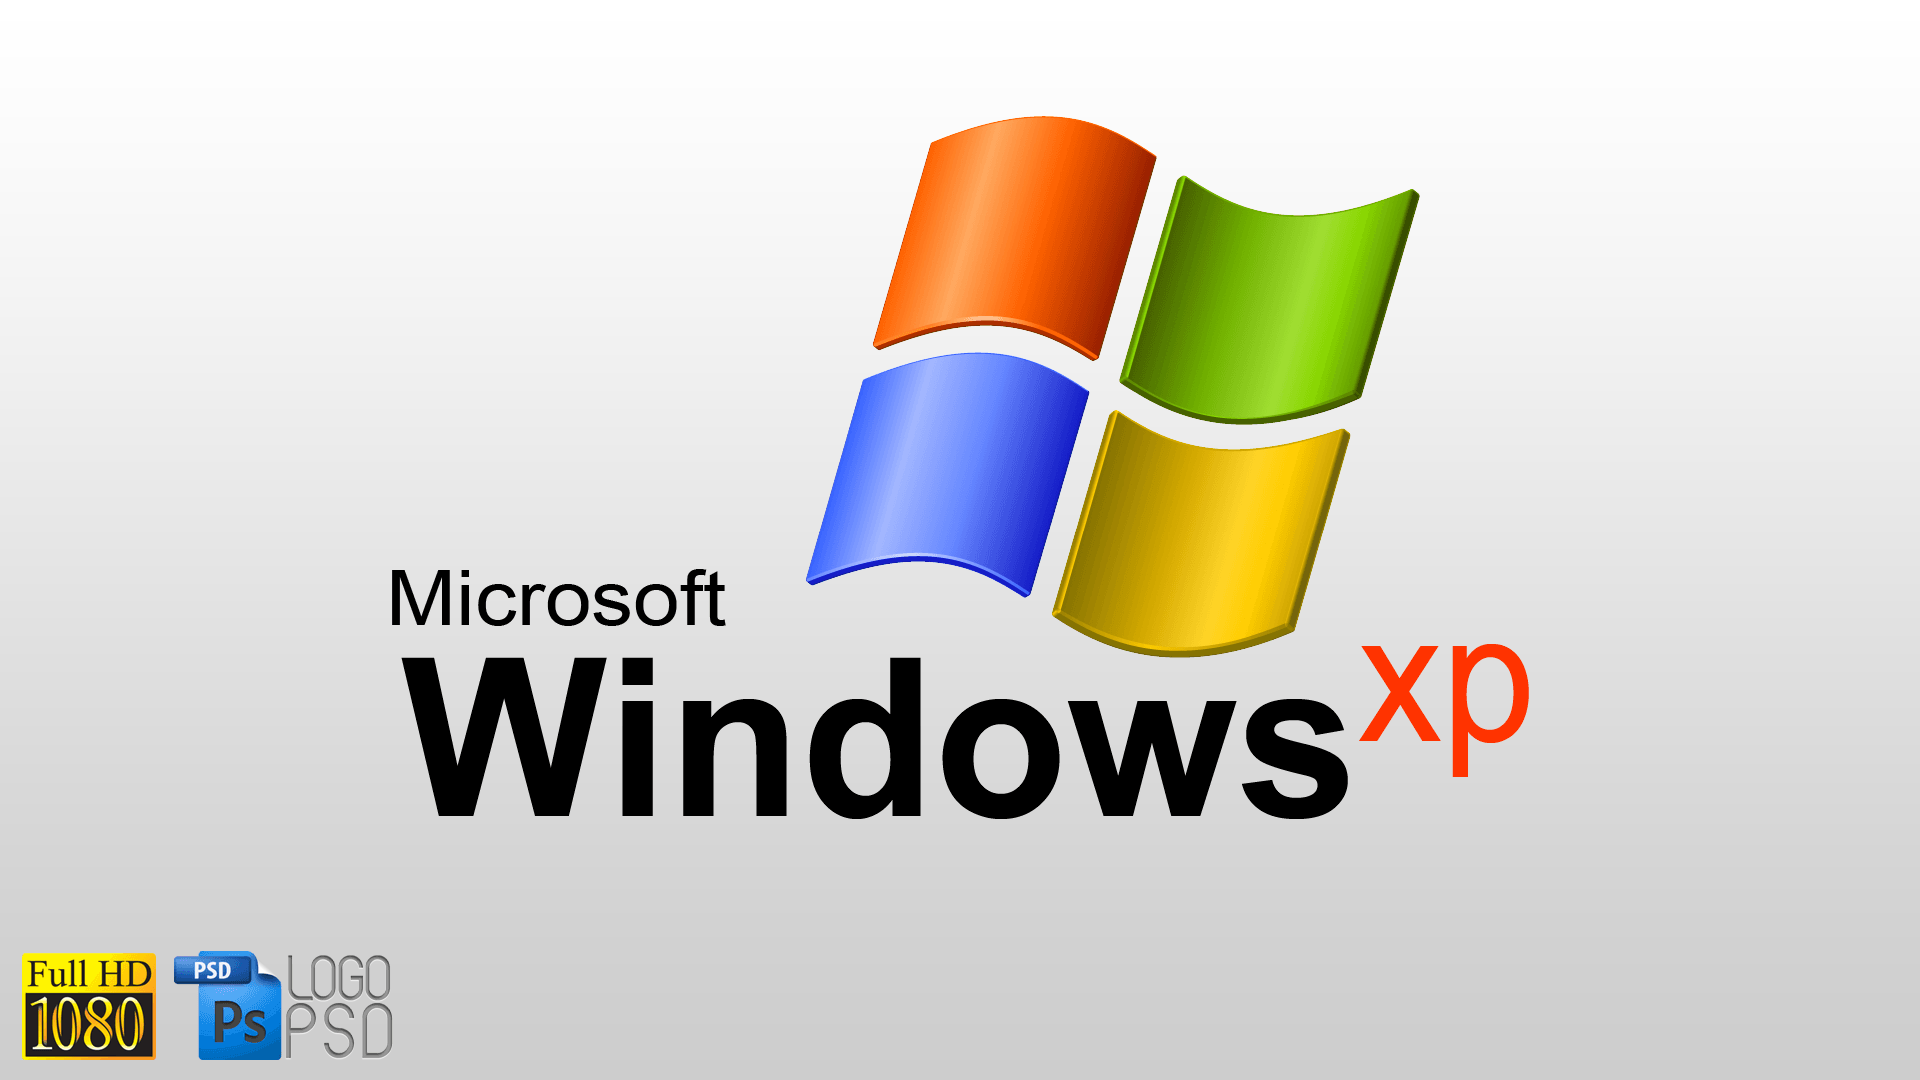 Windows XP Logo - Image - Windows XP Logo PSD by iampxr.png | Global TV (Indonesia ...